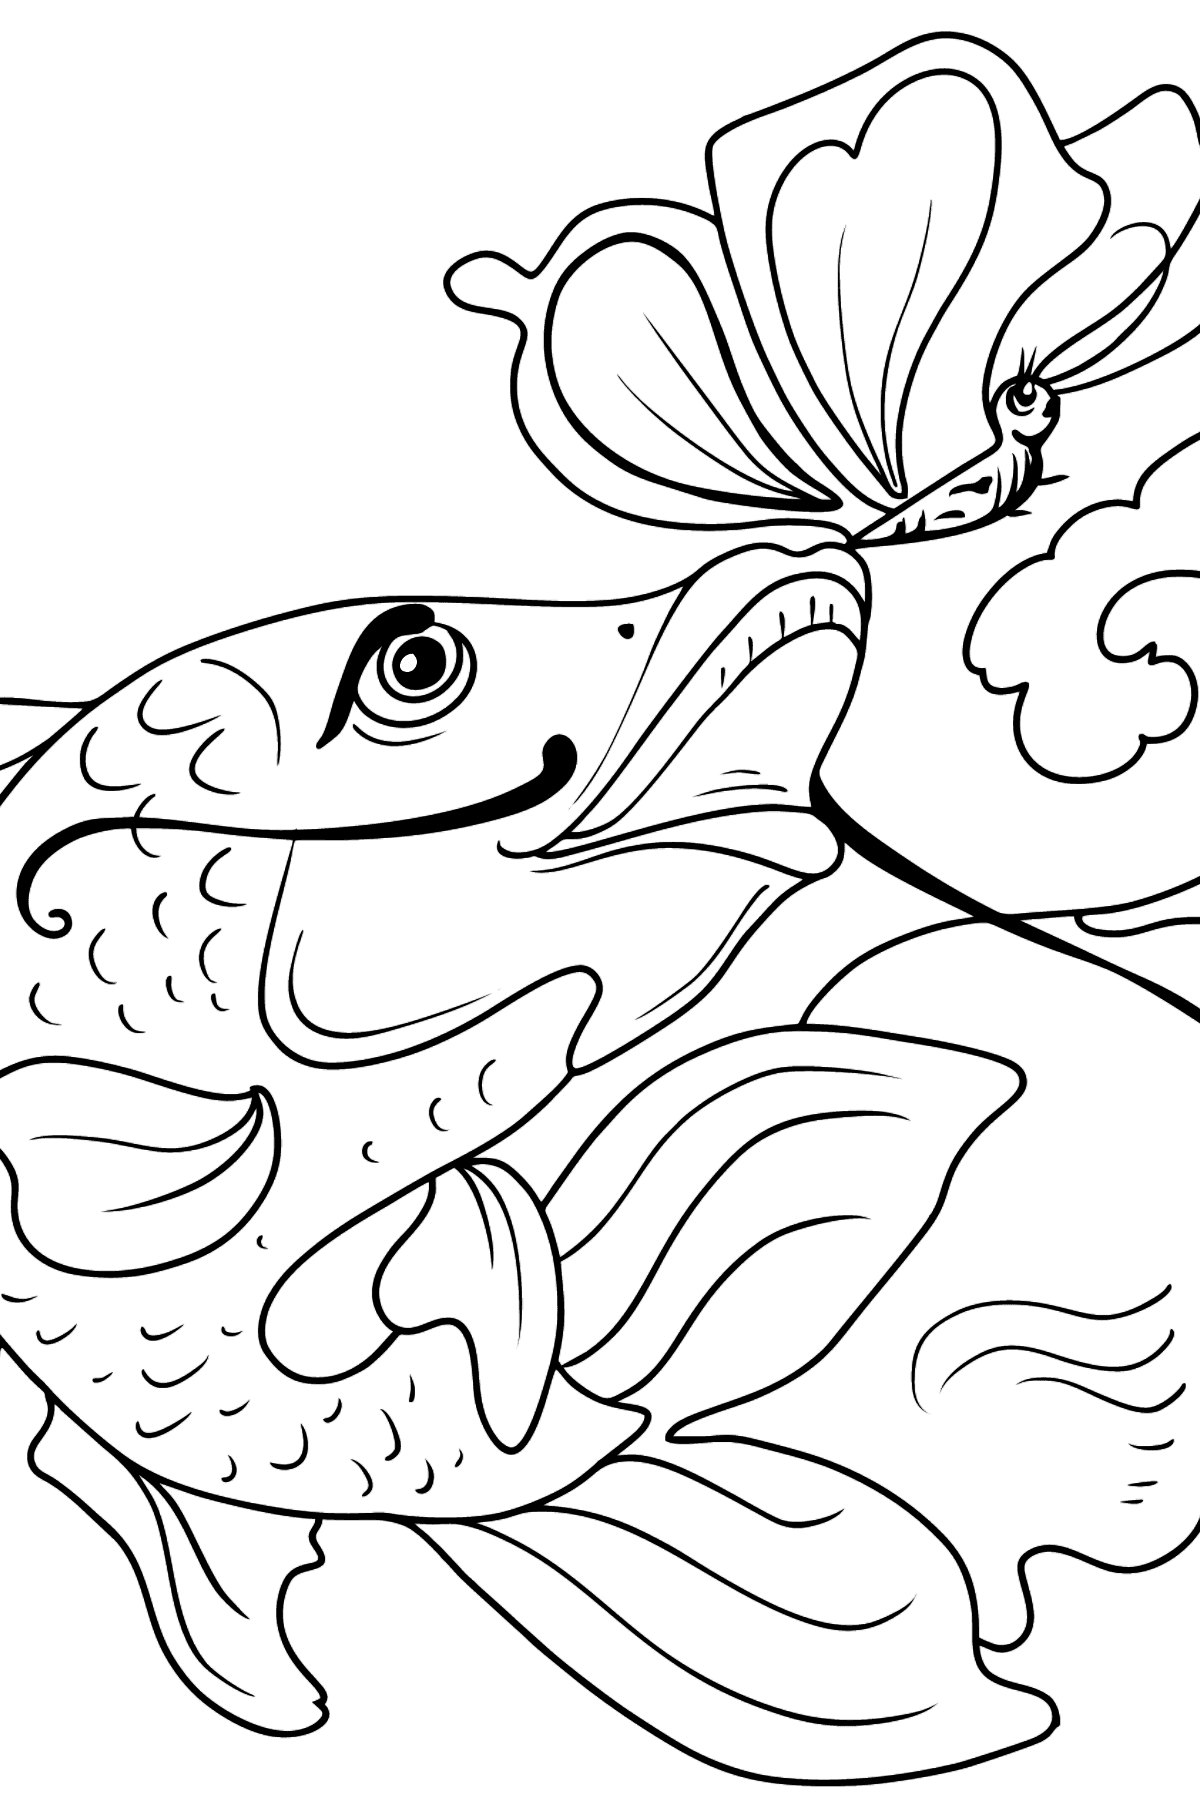 Fish and Butterfly coloring page - Coloring Pages for Kids